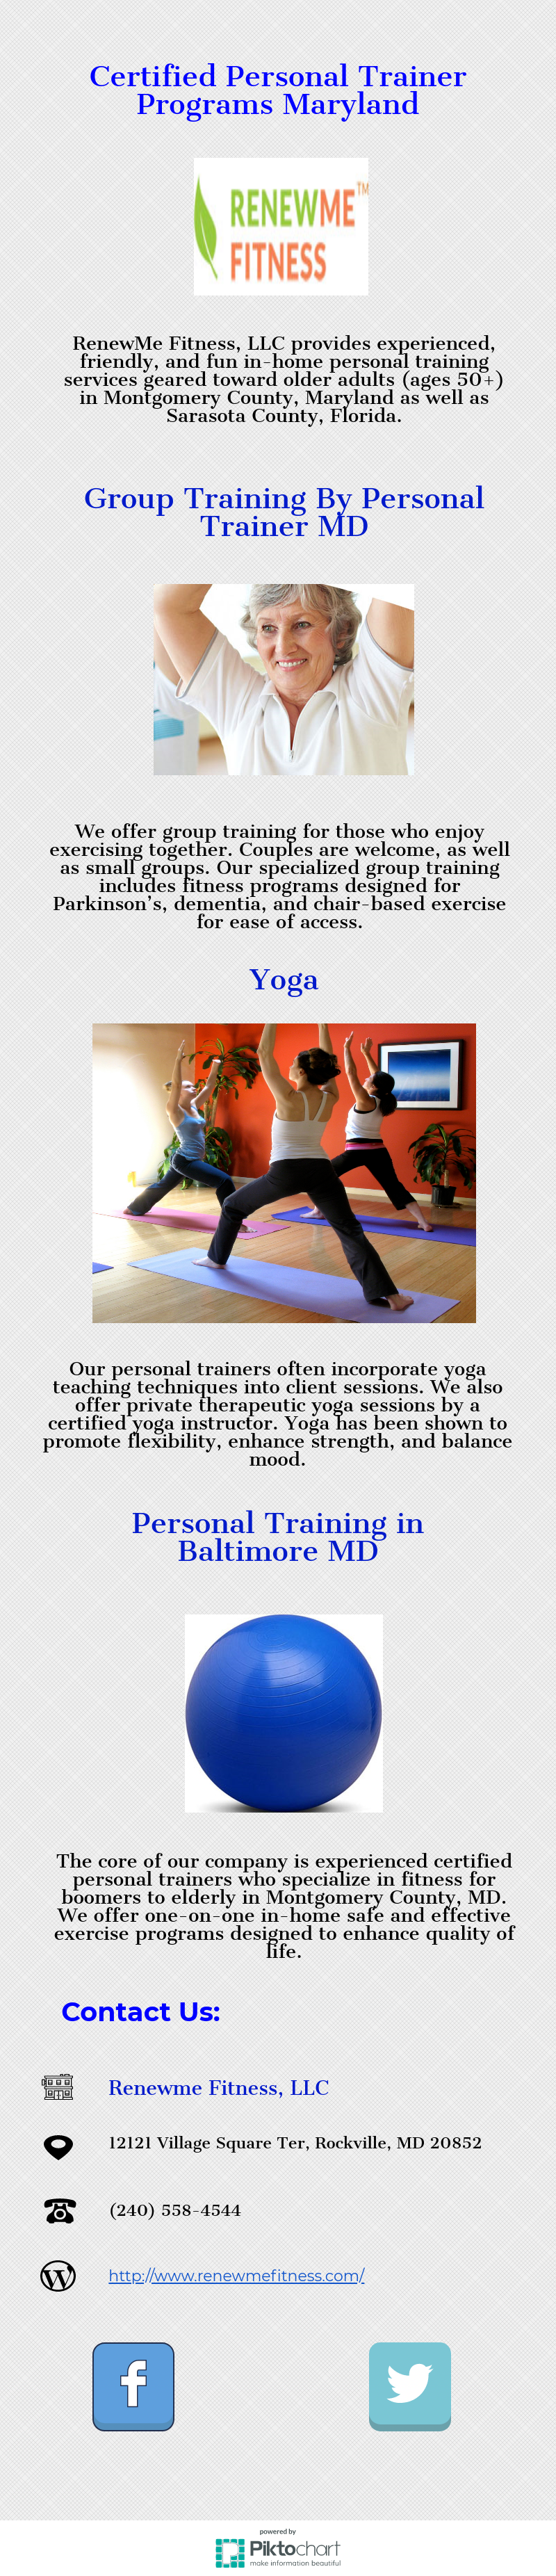 Renewme Fitness Llc Provides Experienced Friendly And Fun In Home